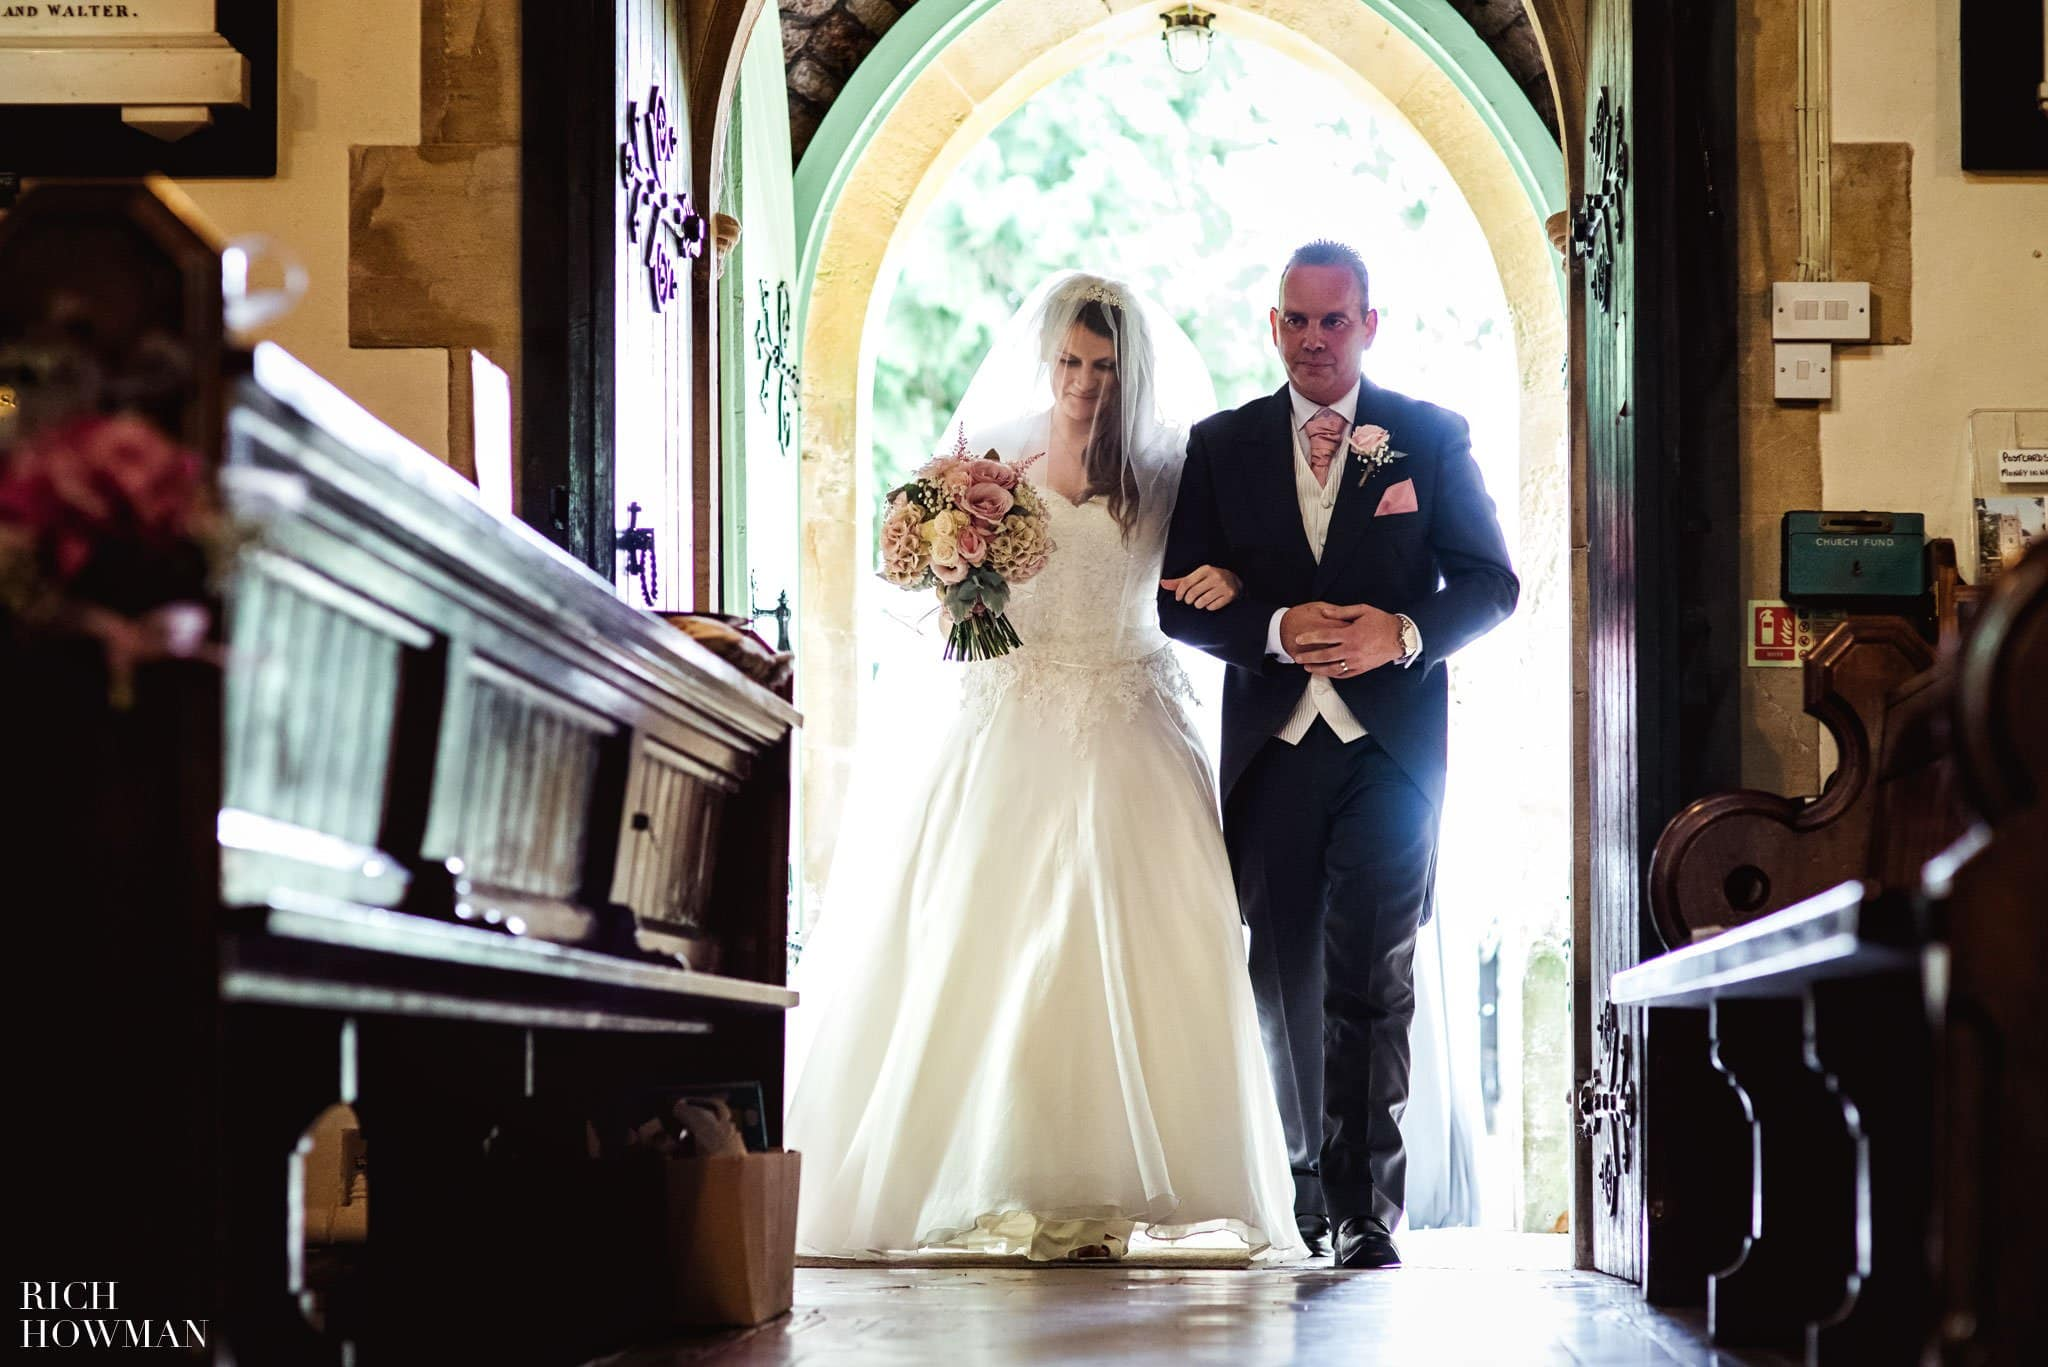 Wedding photograph of the bride and her dad in the Church doorway for her wedding at St. James' Church in Ashwick